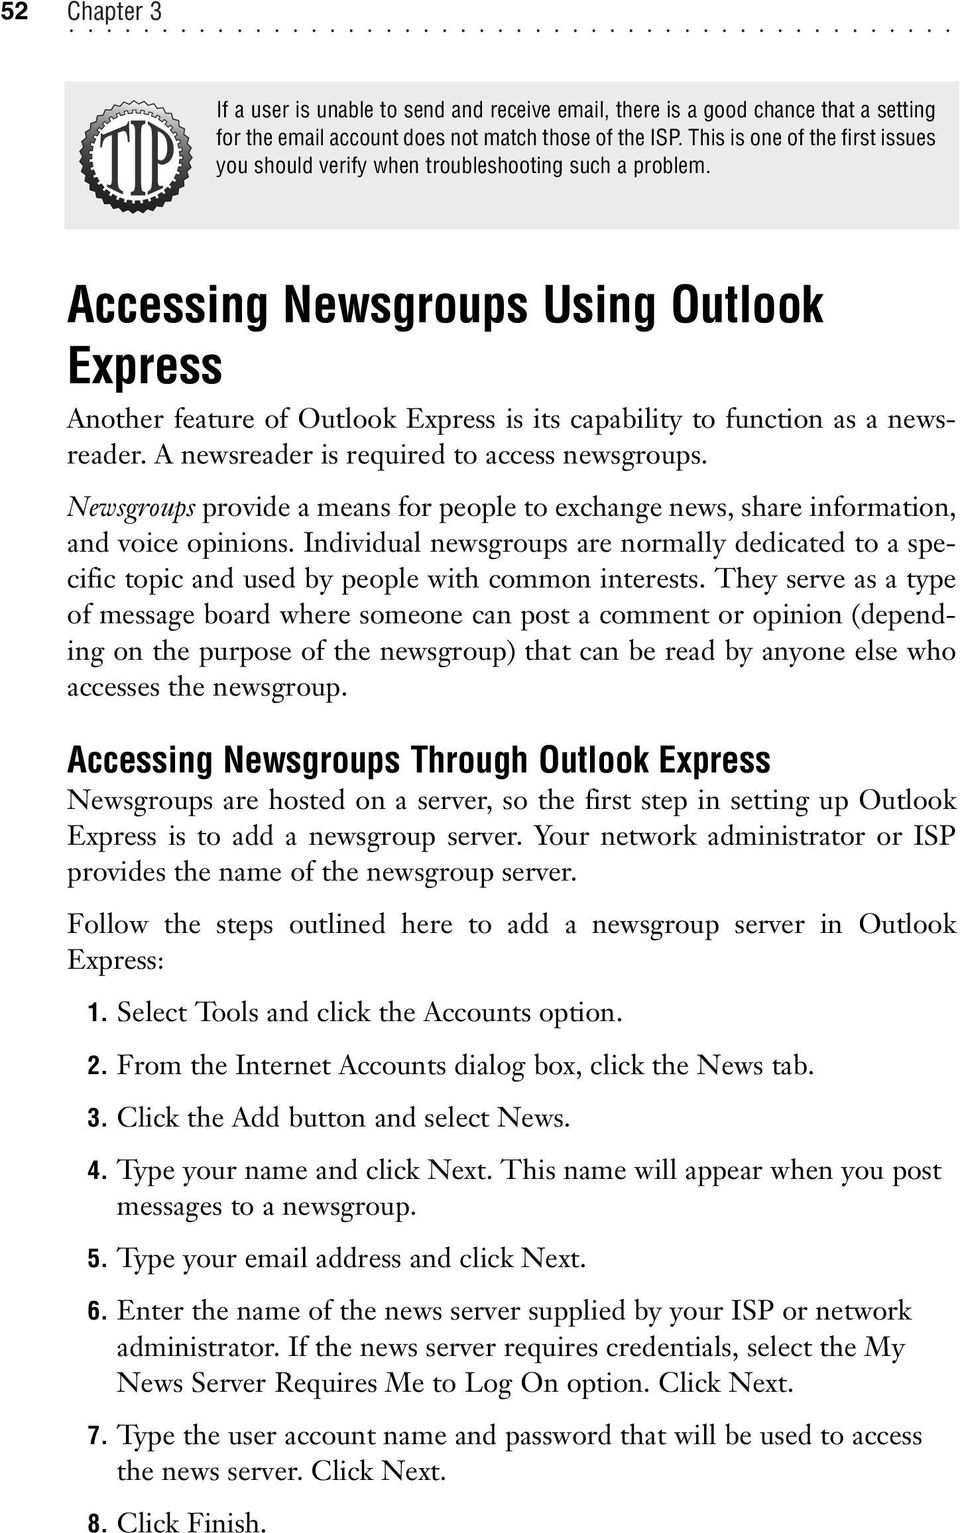 Accessing Newsgroups Using Outlook Express Another feature of Outlook Express is its capability to function as a newsreader. A newsreader is required to access newsgroups.